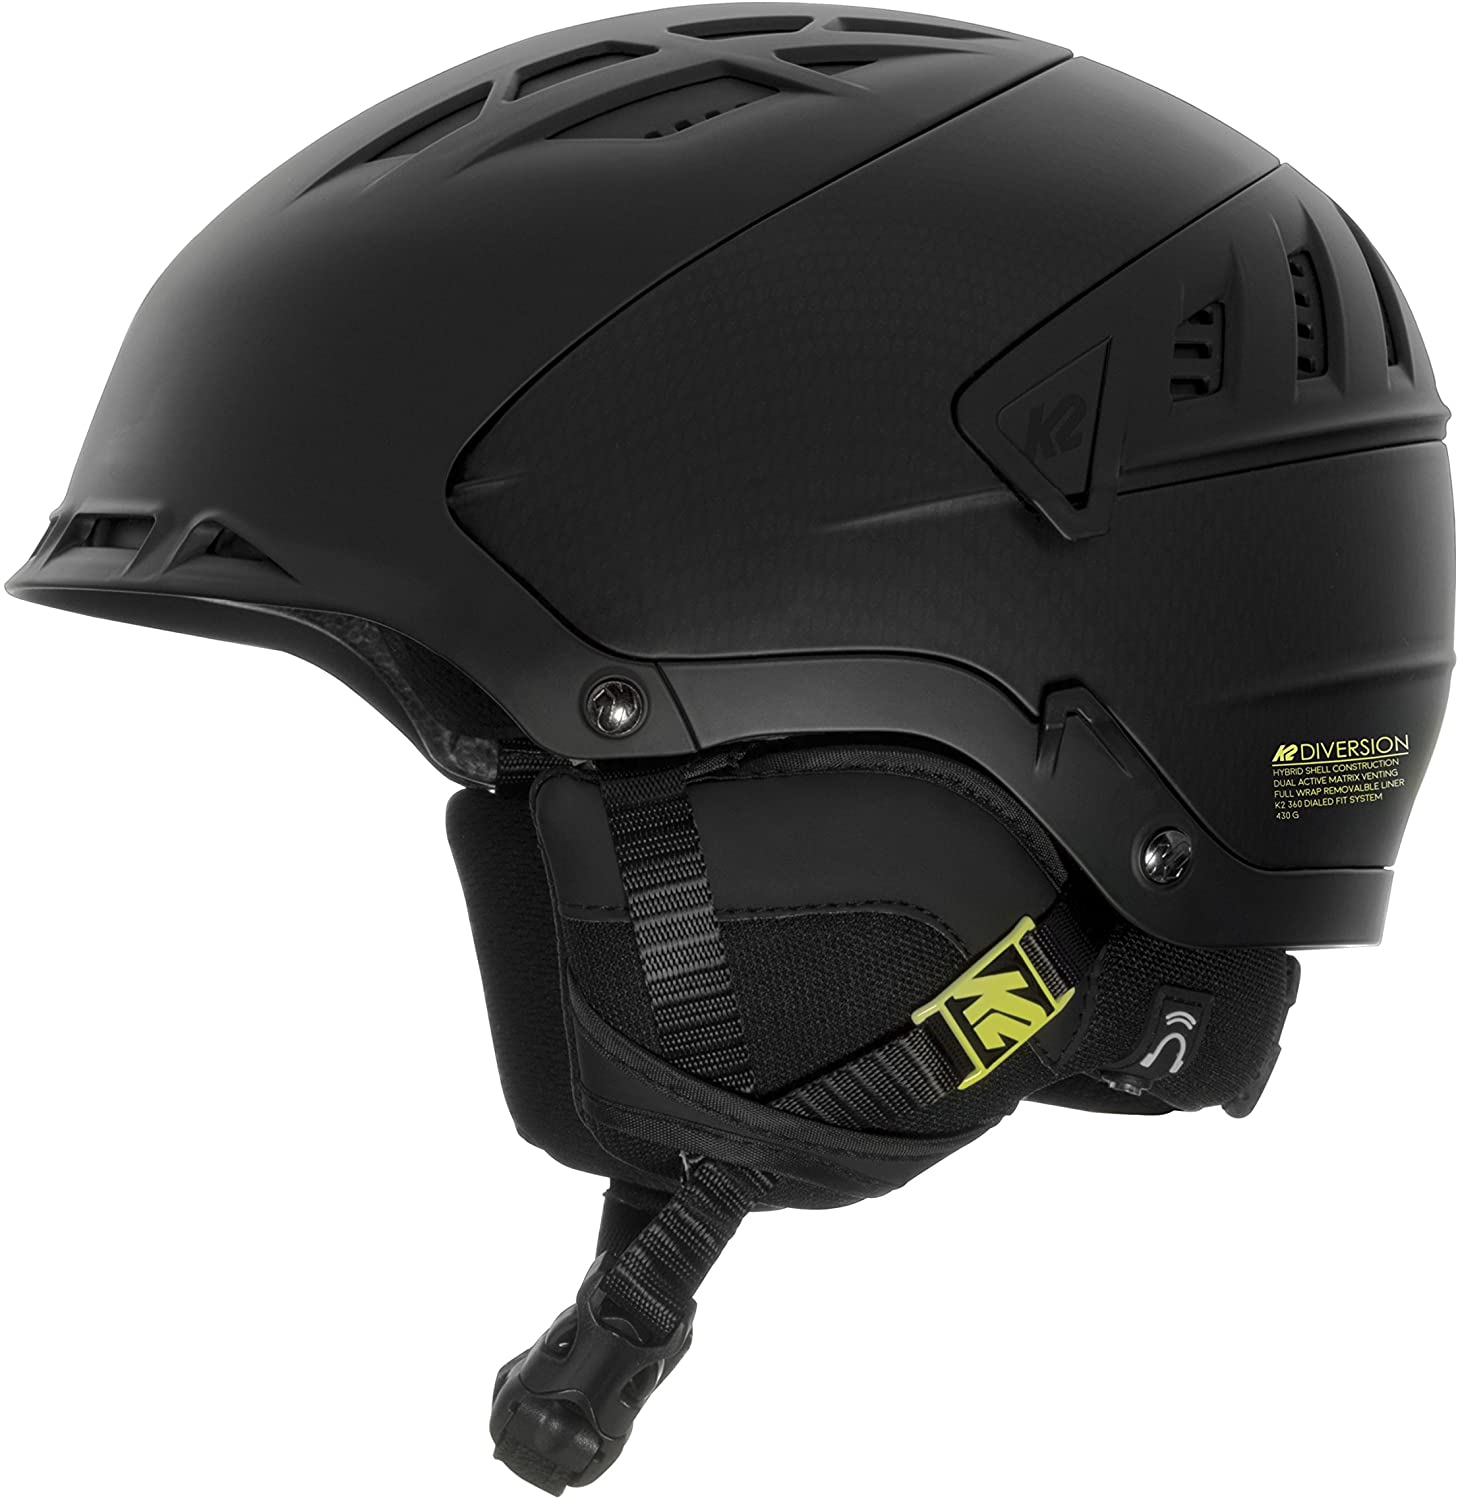 K2 Diversion Ski Helmet 2018